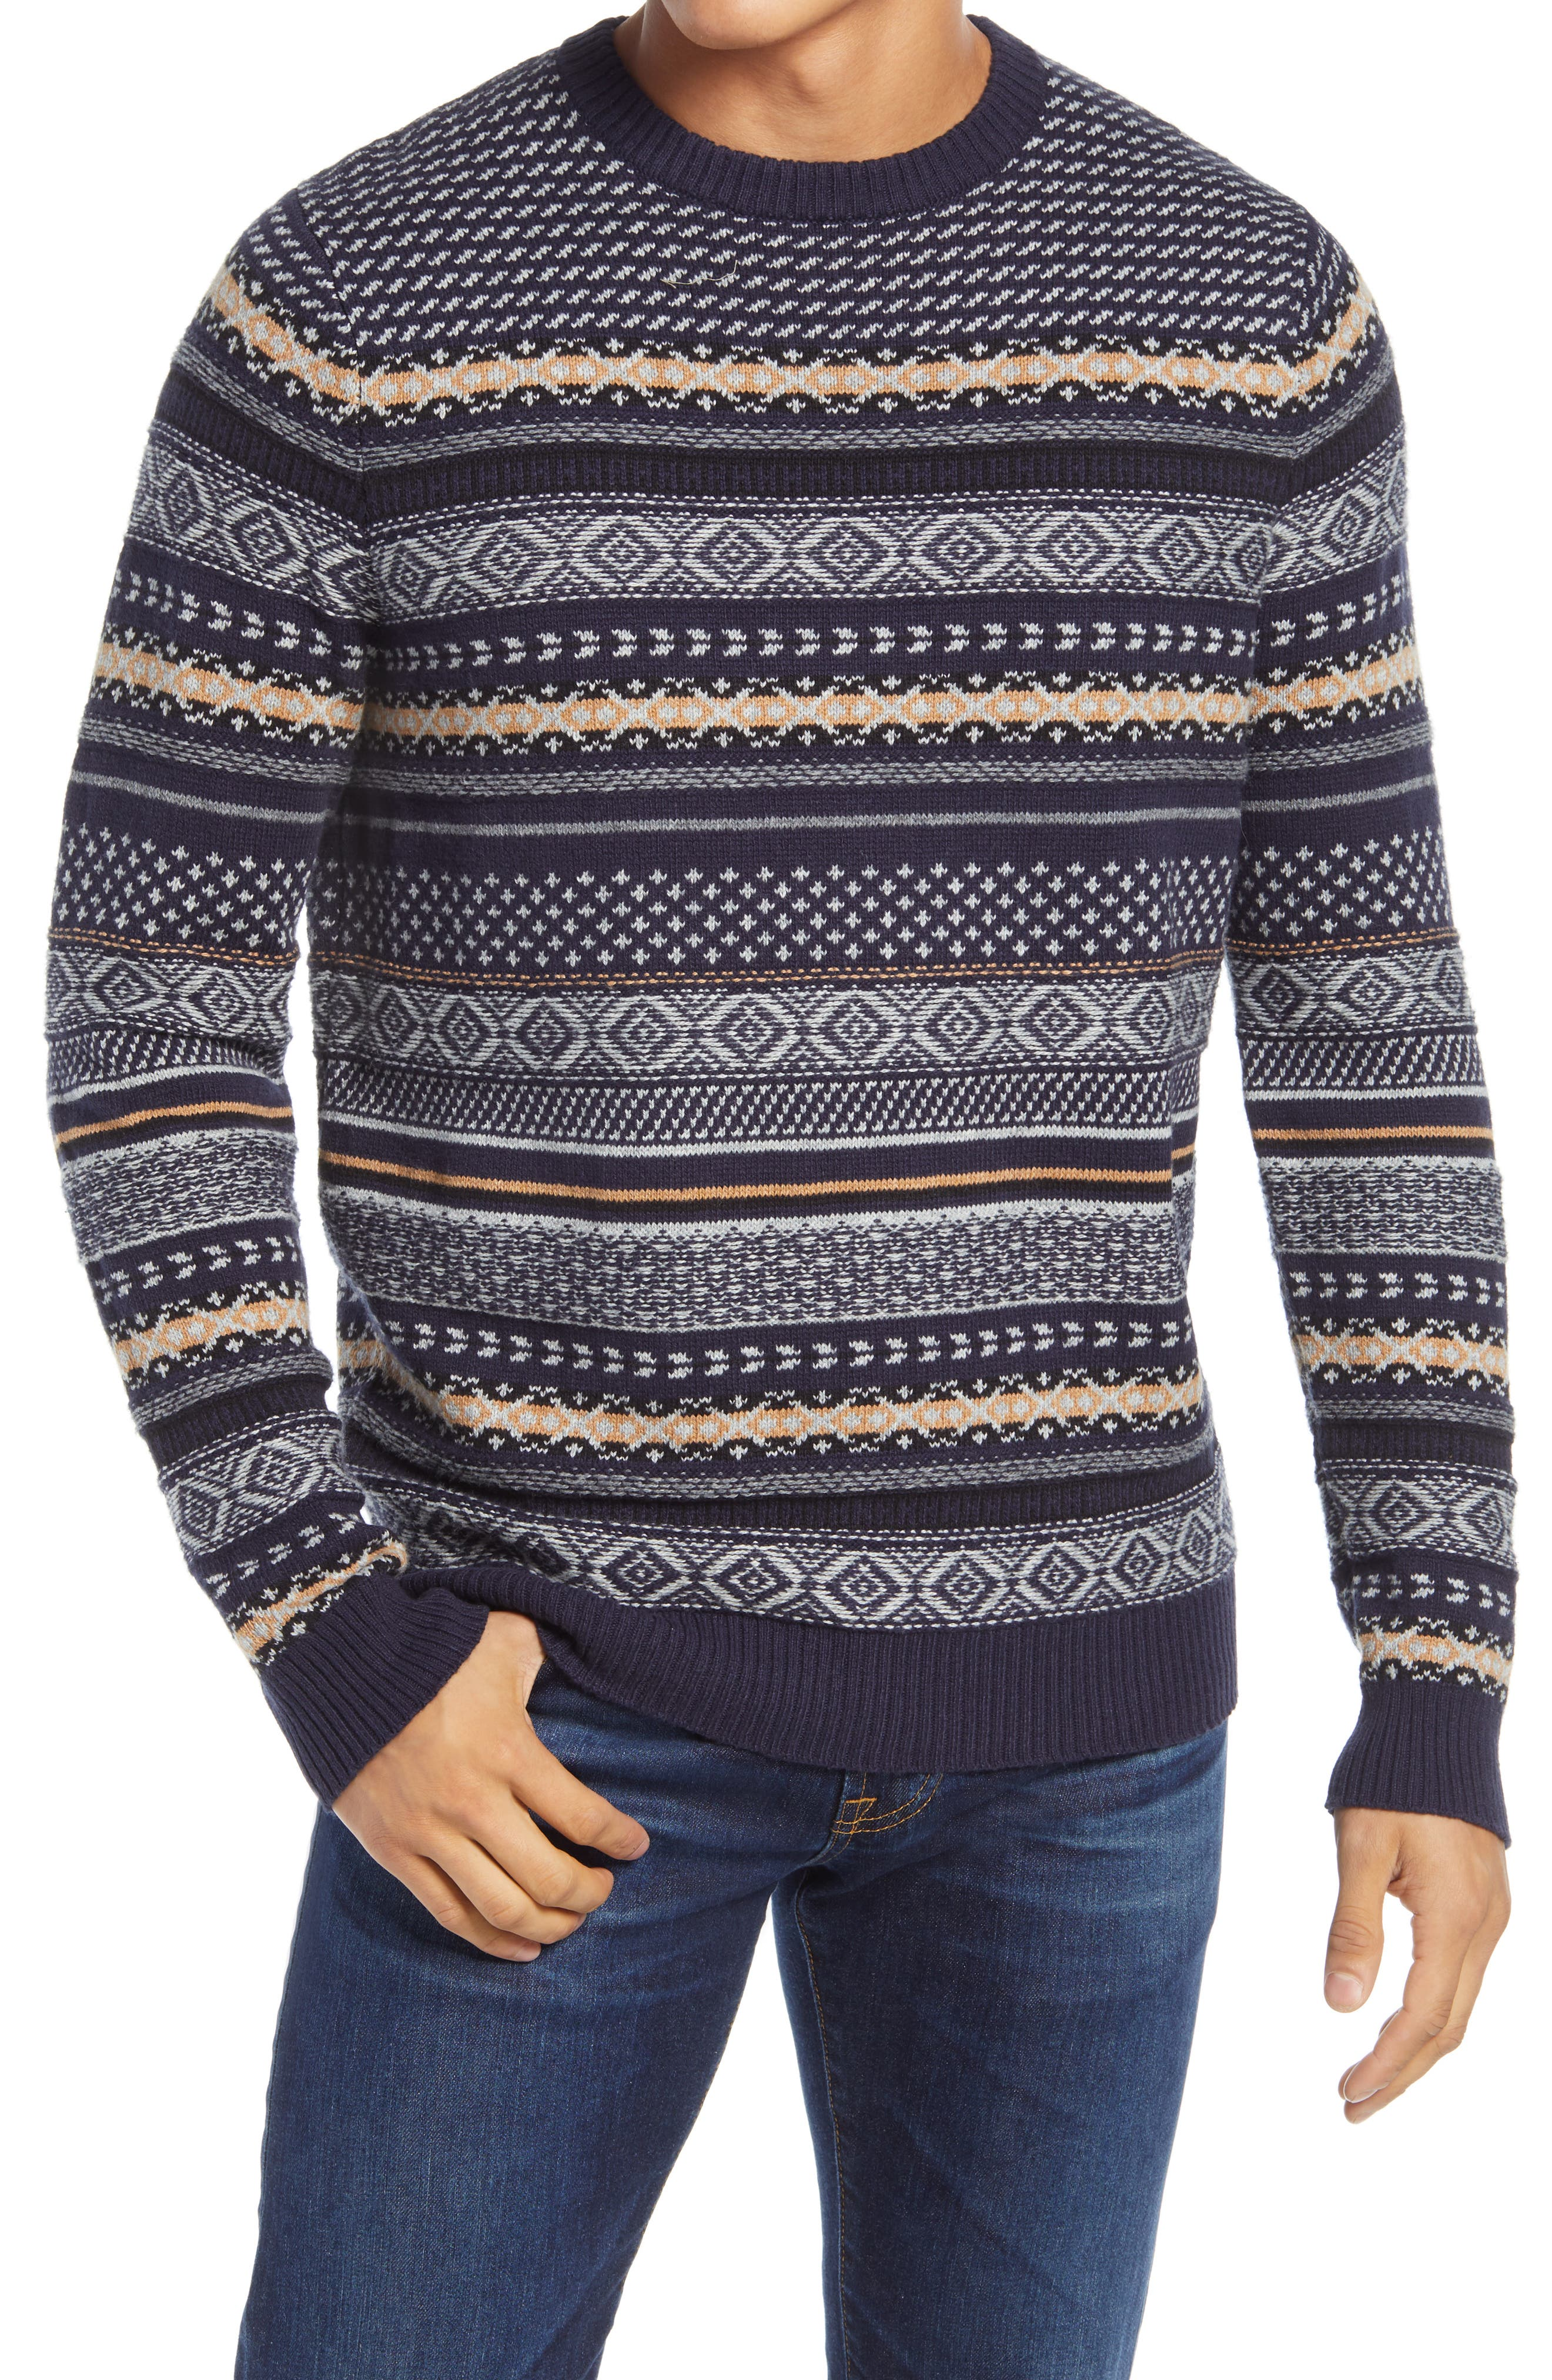 Men's Vintage Sweaters History Mens 1901 Fair Isle Crewneck Sweater $55.65 AT vintagedancer.com